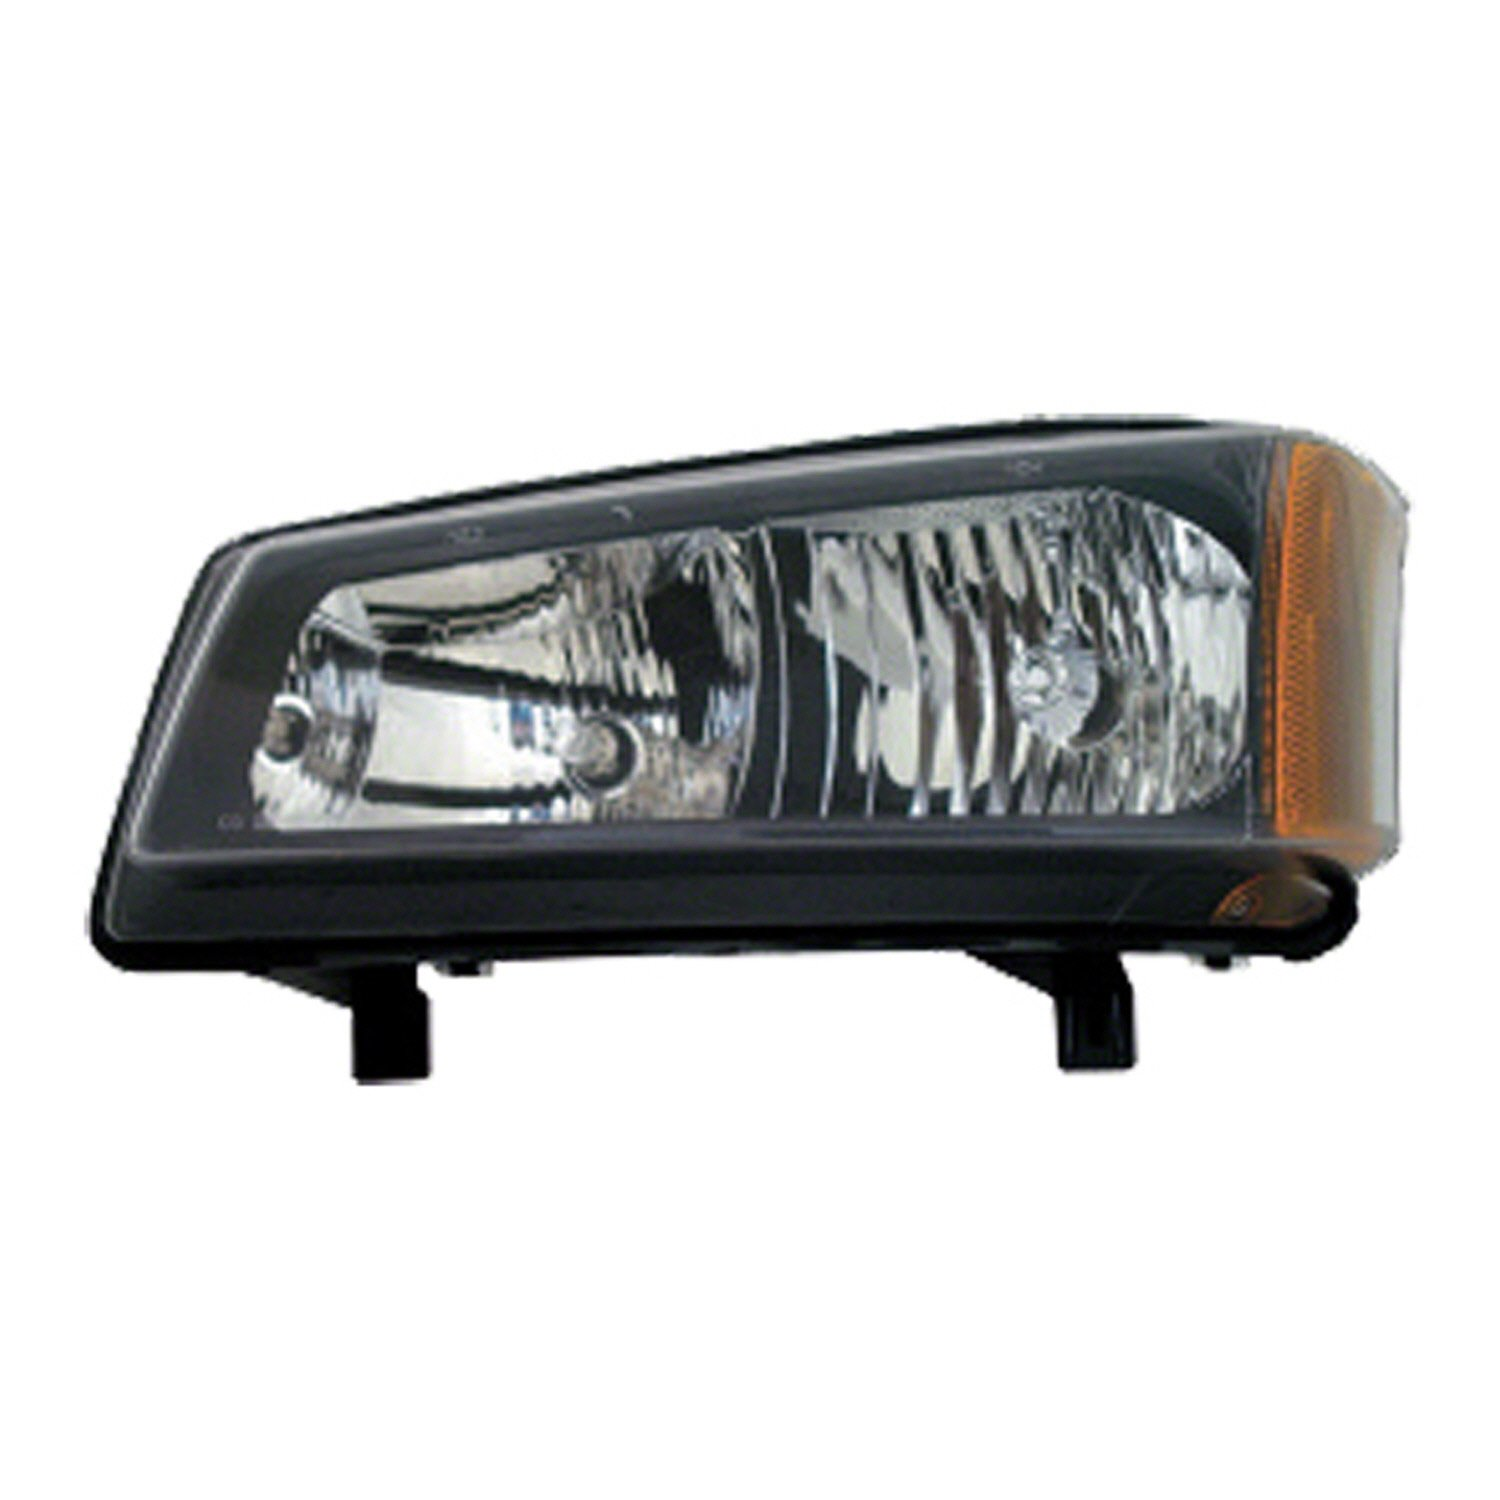 OE Replacement Headlight Assembly CHEVROLET AVALANCHE 2003-2004 Multiple Manufacturers GM2502224C Partslink GM2502224